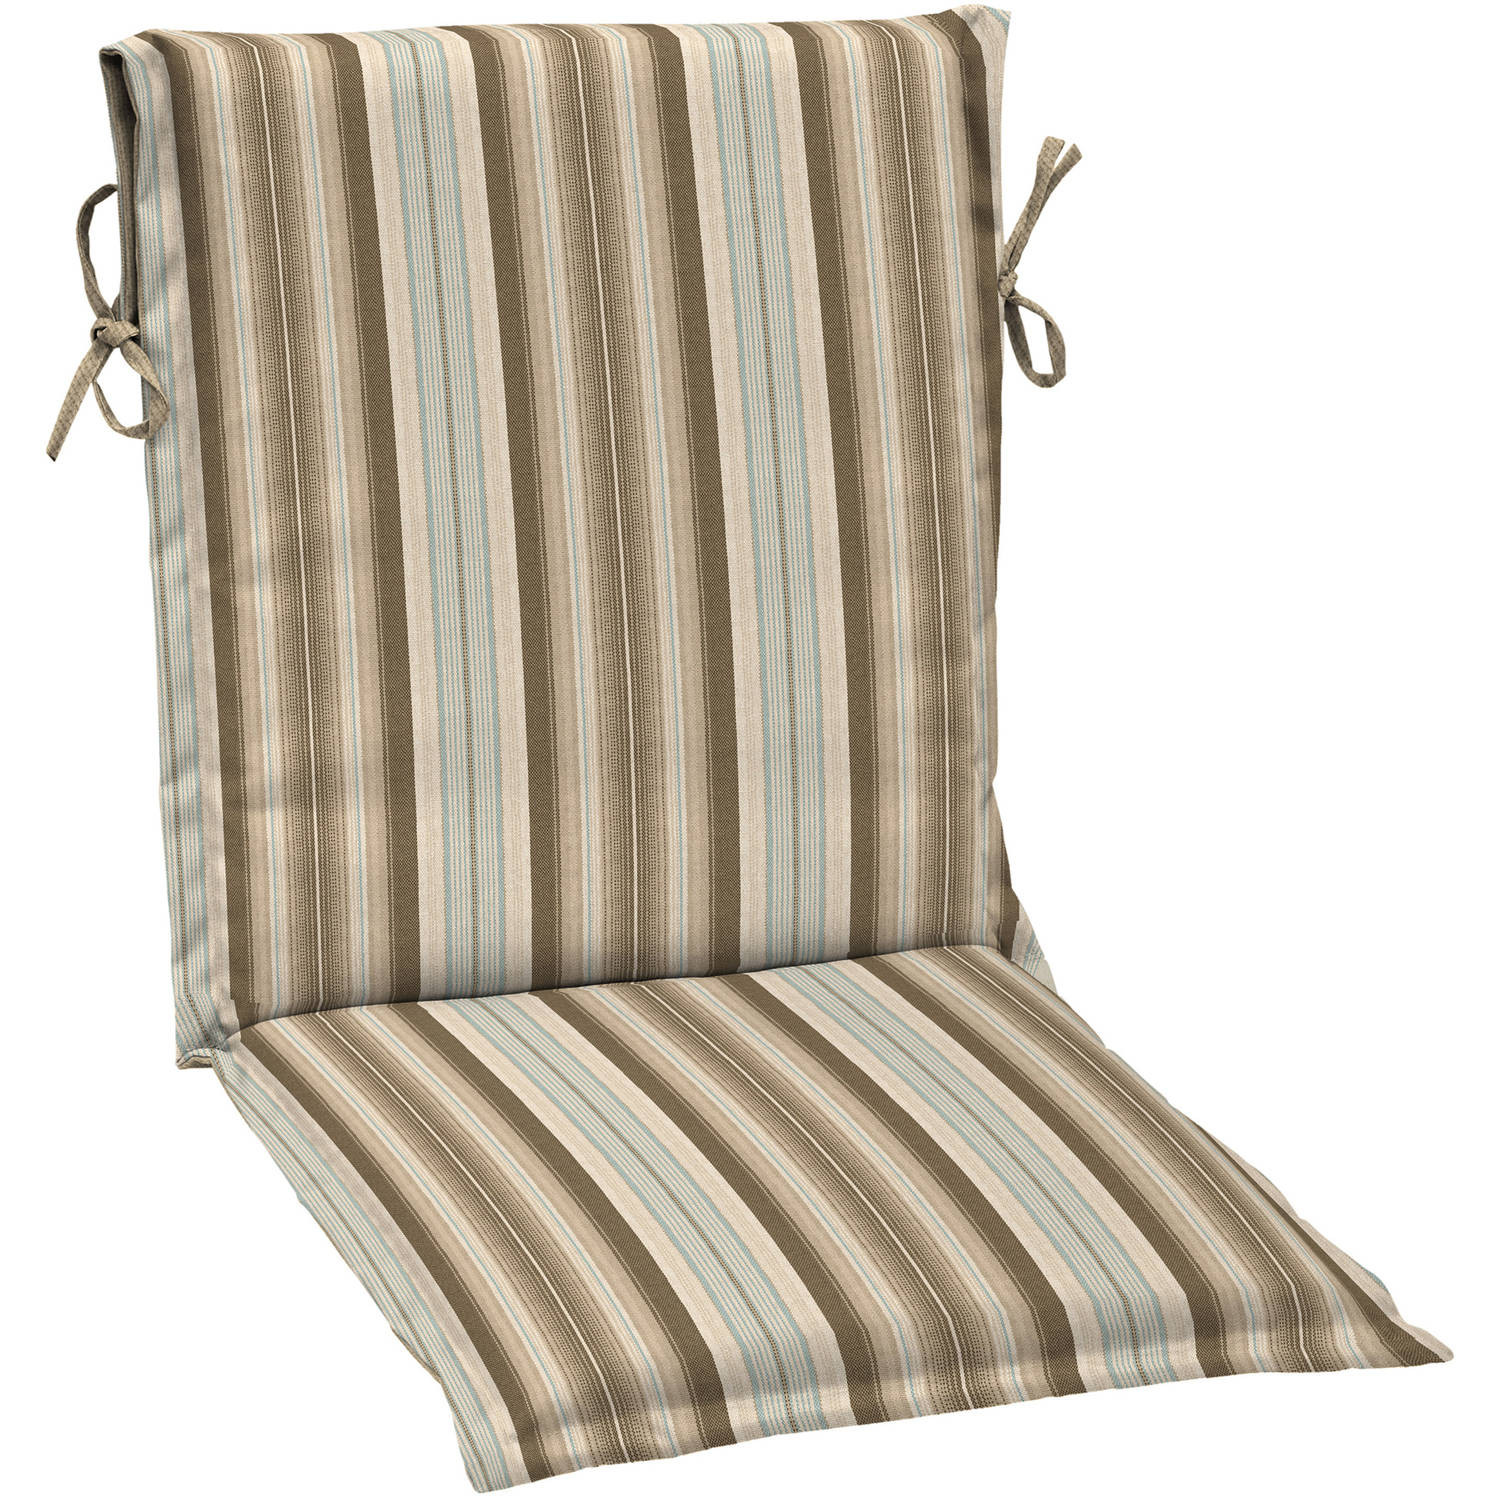 Best ideas about Outdoor Patio Chair Cushions . Save or Pin Outdoor Chair Cushions Walmart Now.